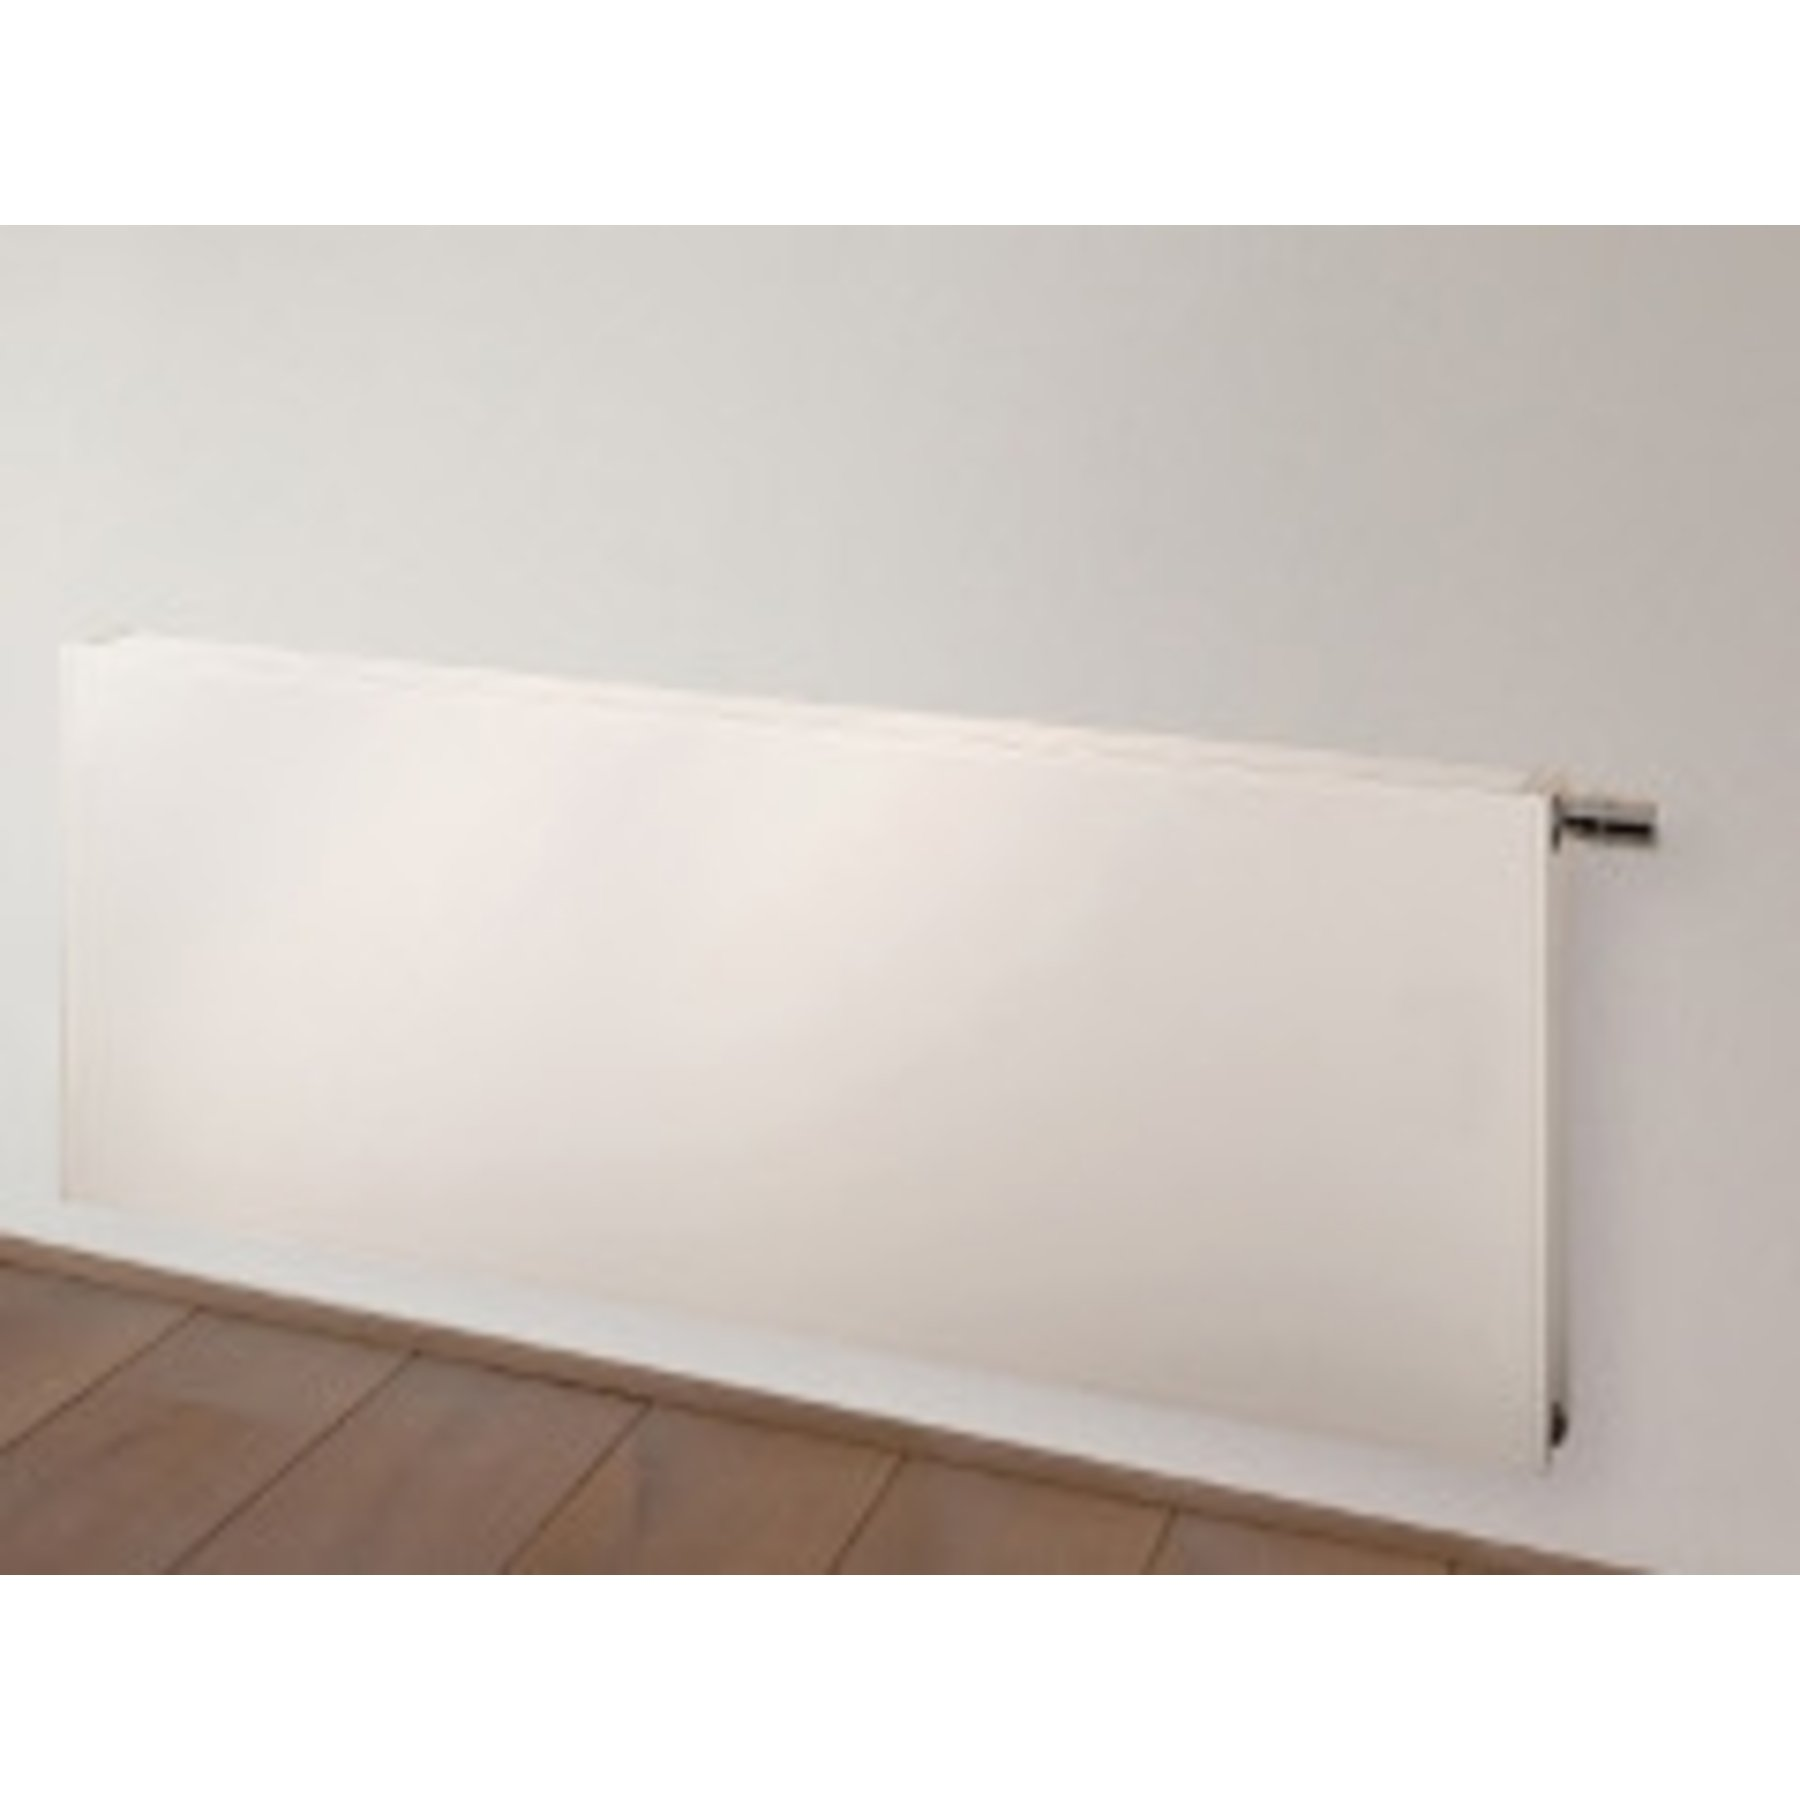 Vasco Flatline Paneelradiator type 22 500x600mm 842W vlak wit structuur (S600)